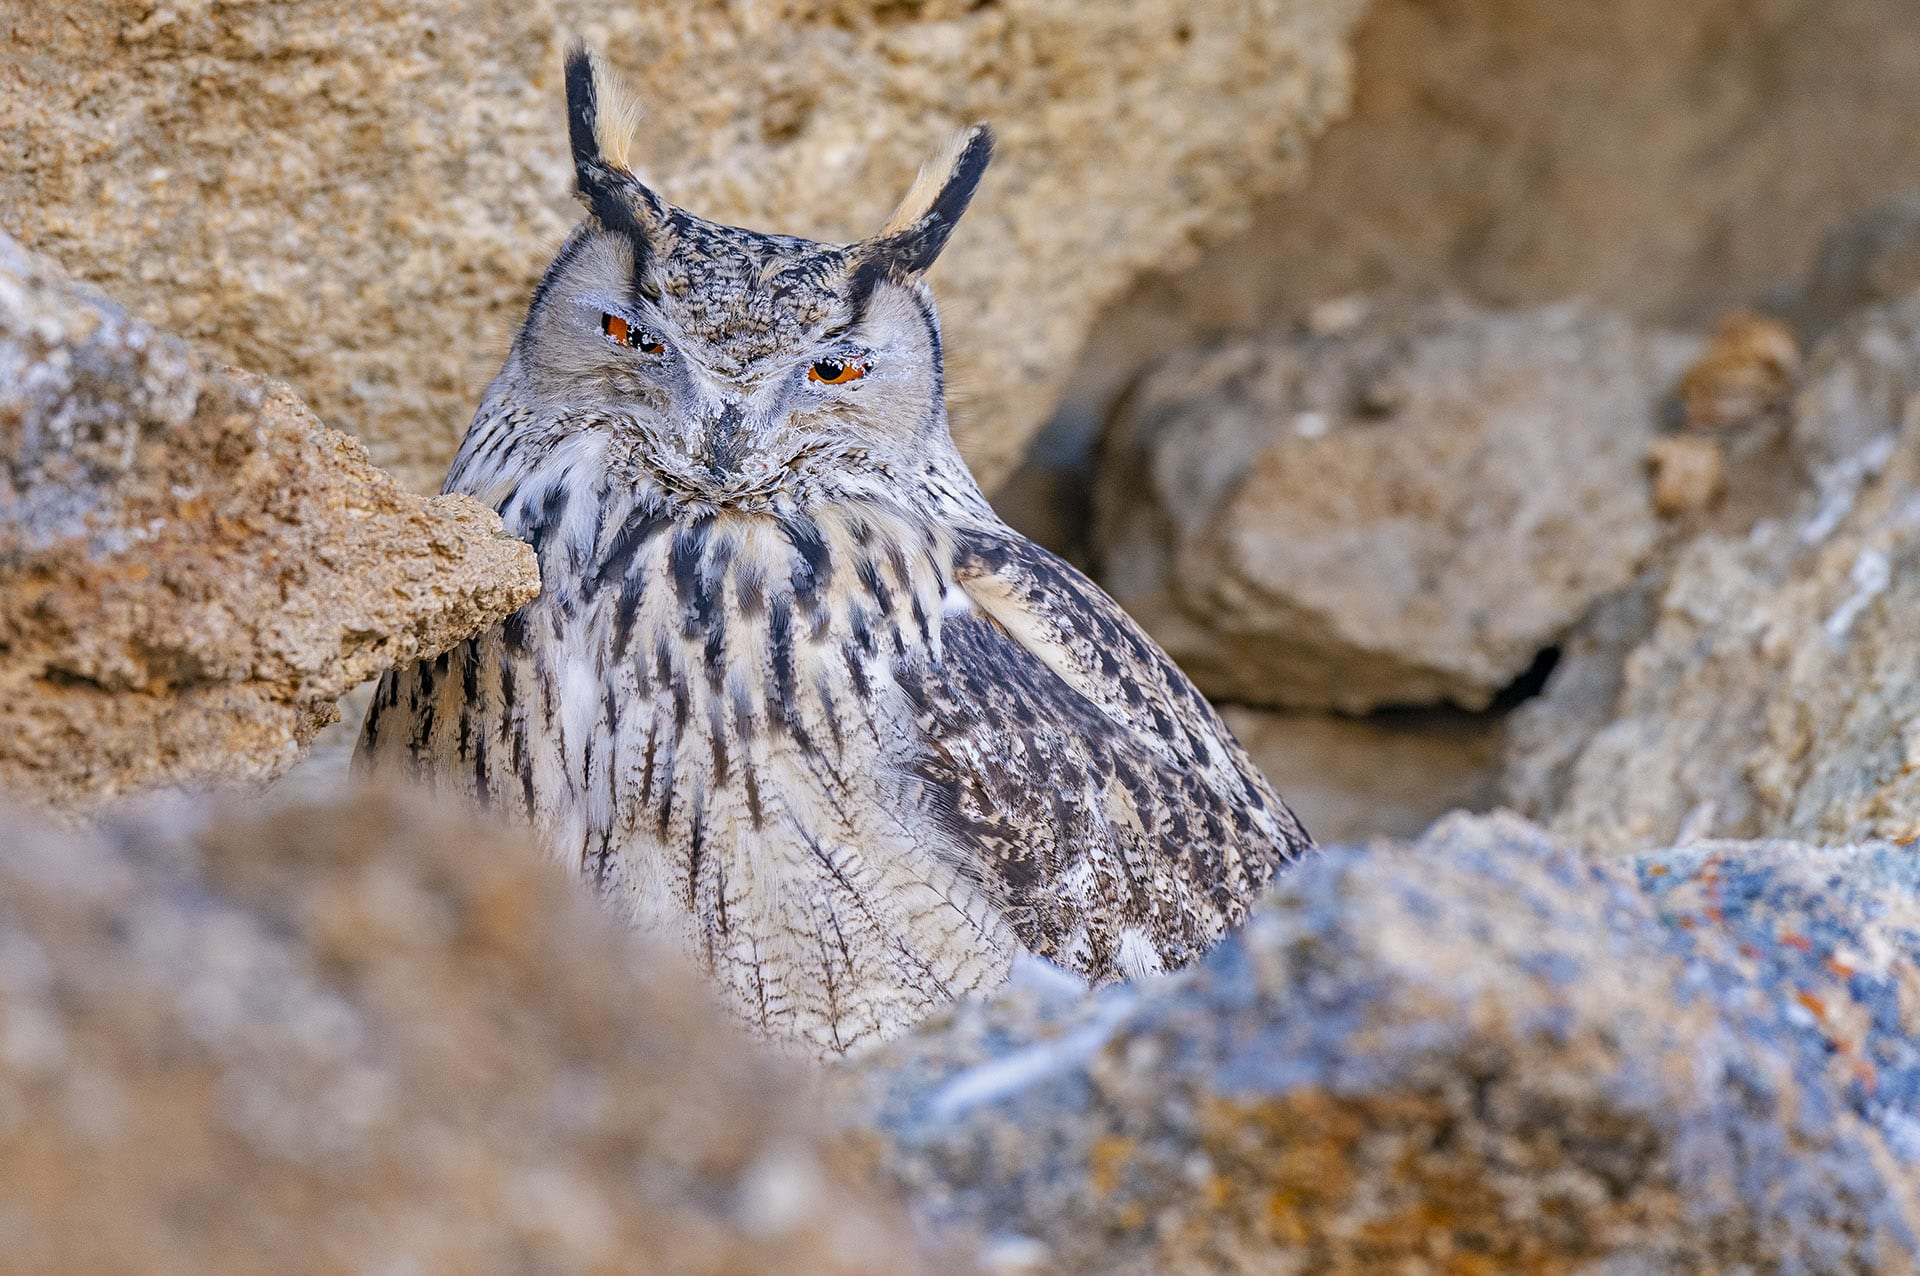 """Eagle-owls are large with a tremendous wingspan, sometimes measuring nearly six feet across. They also sport prominent ear tufts, but their most recognisable feature is their eyes, ranging from a fiery orange to a dark red.  Found across a range of wooded habitats, these birds are more common in rocky, barren landscapes. The Indian eagle-owl (Bubo bengalensis) (top) is also called the rock eagle-owl. """"You won't find them in cold, high-altitude areas. They prefer warm regions and scrub forests where they perch at the base of a bush,"""" says Shashank Dalvi. The Eurasian eagle-owl (Bubo bubo) (above) on the other hand is always found in cold deserts like Ladakh. They're brilliant at camouflage, and blend artfully into the rocky landscape."""